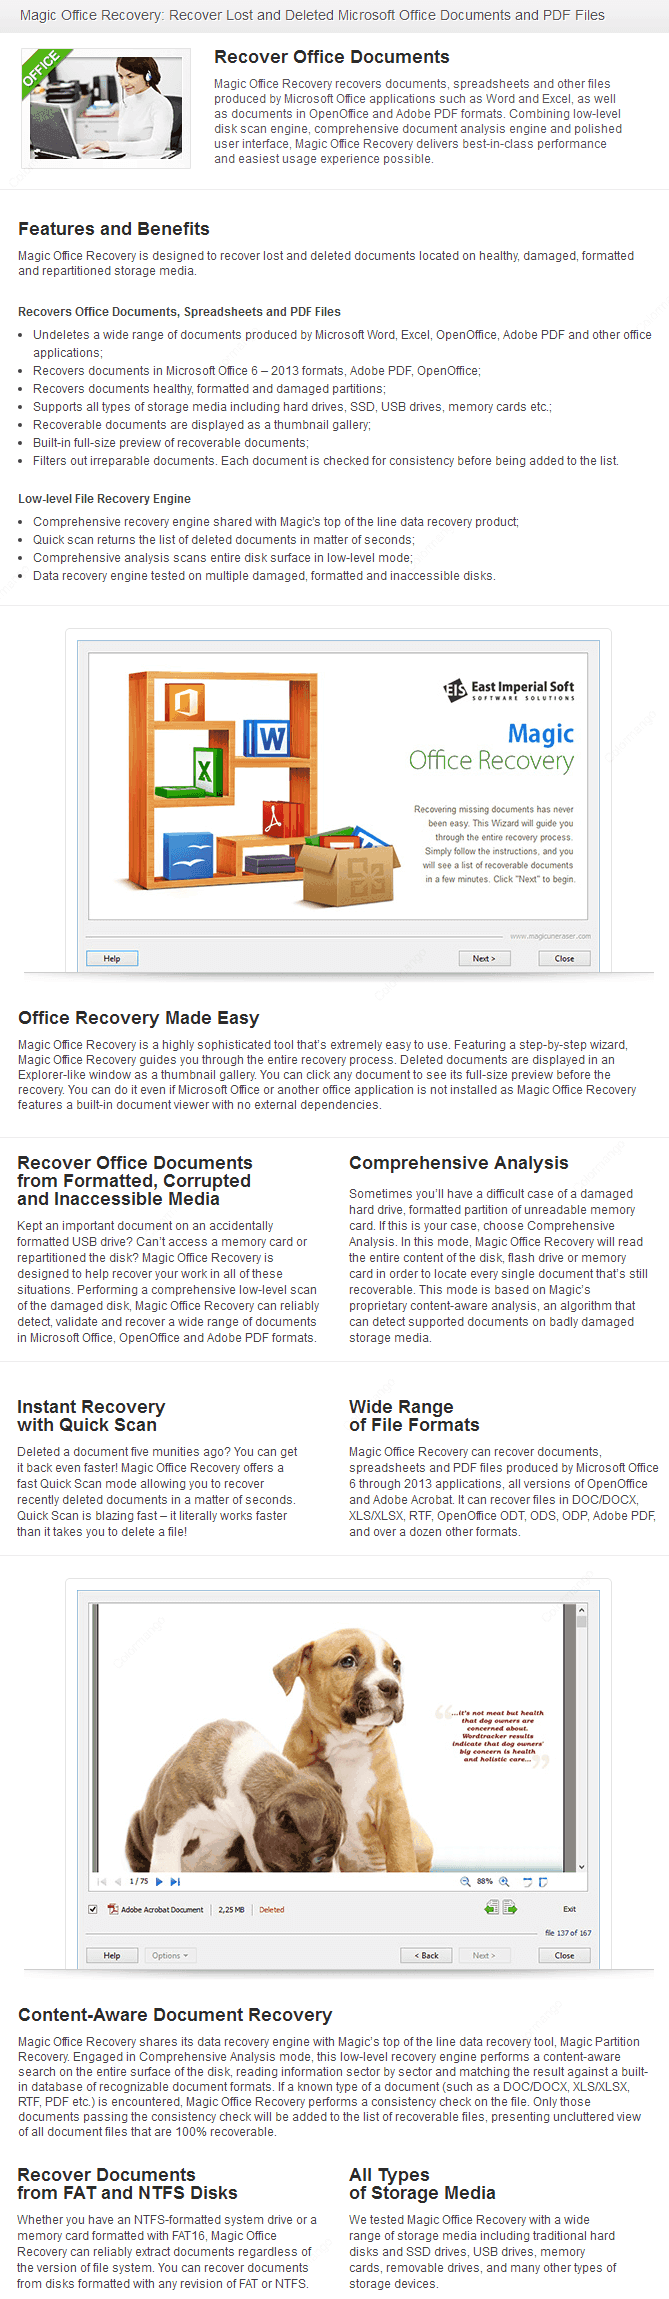 Magic Office Recovery key Features